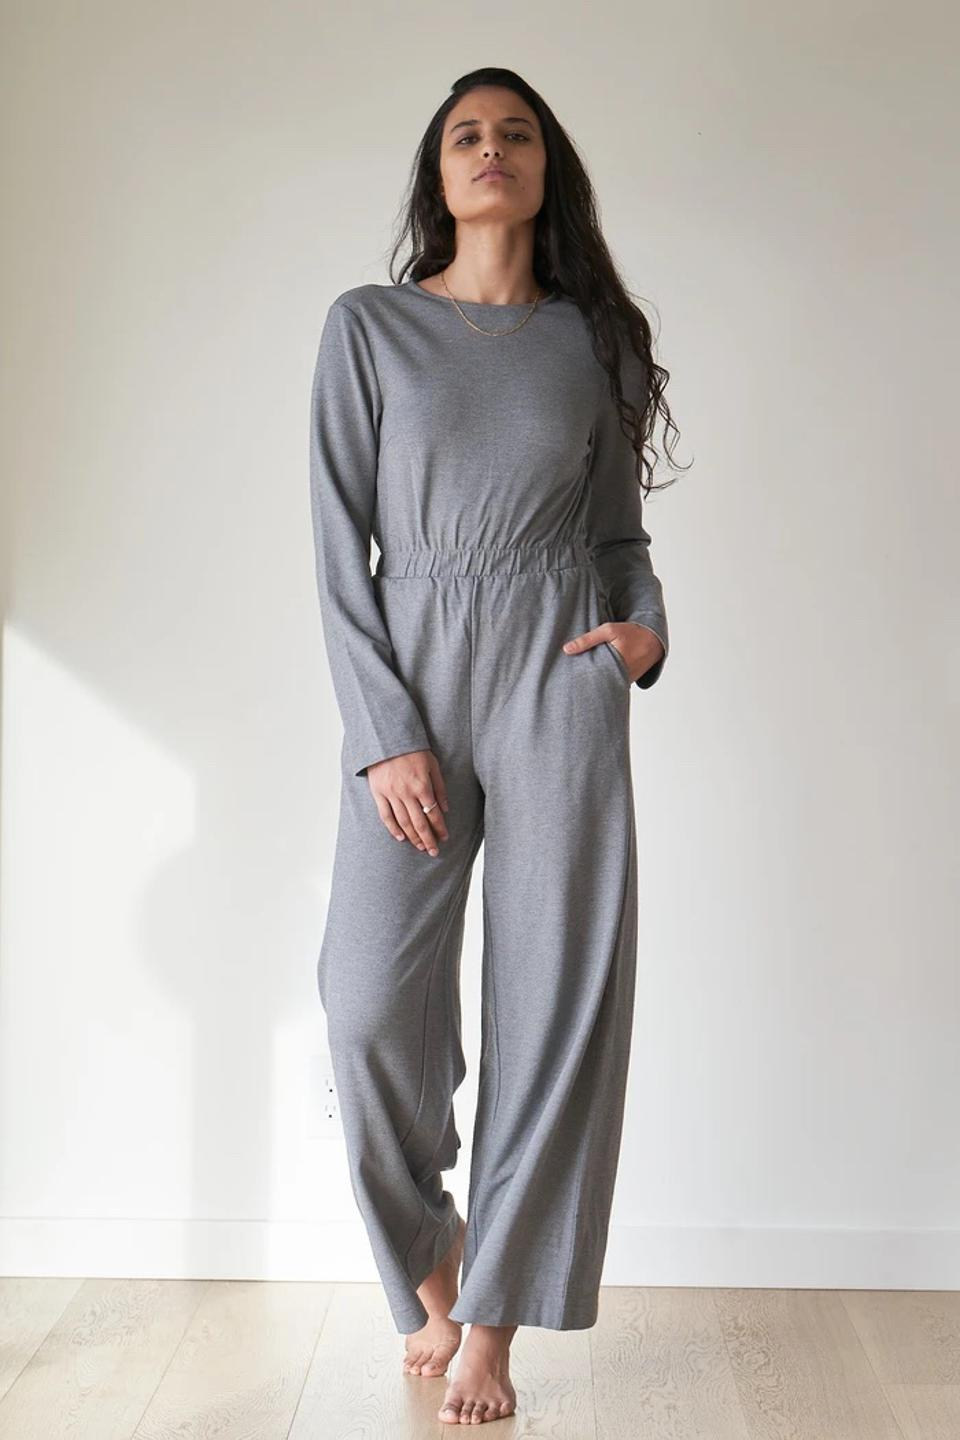 The jumpsuit is made of a luxurious blend of recycled fishnets and beech trees that offers 4-way stretch and sweat-free features packed into a jumpsuit that hugs you in all the right places.